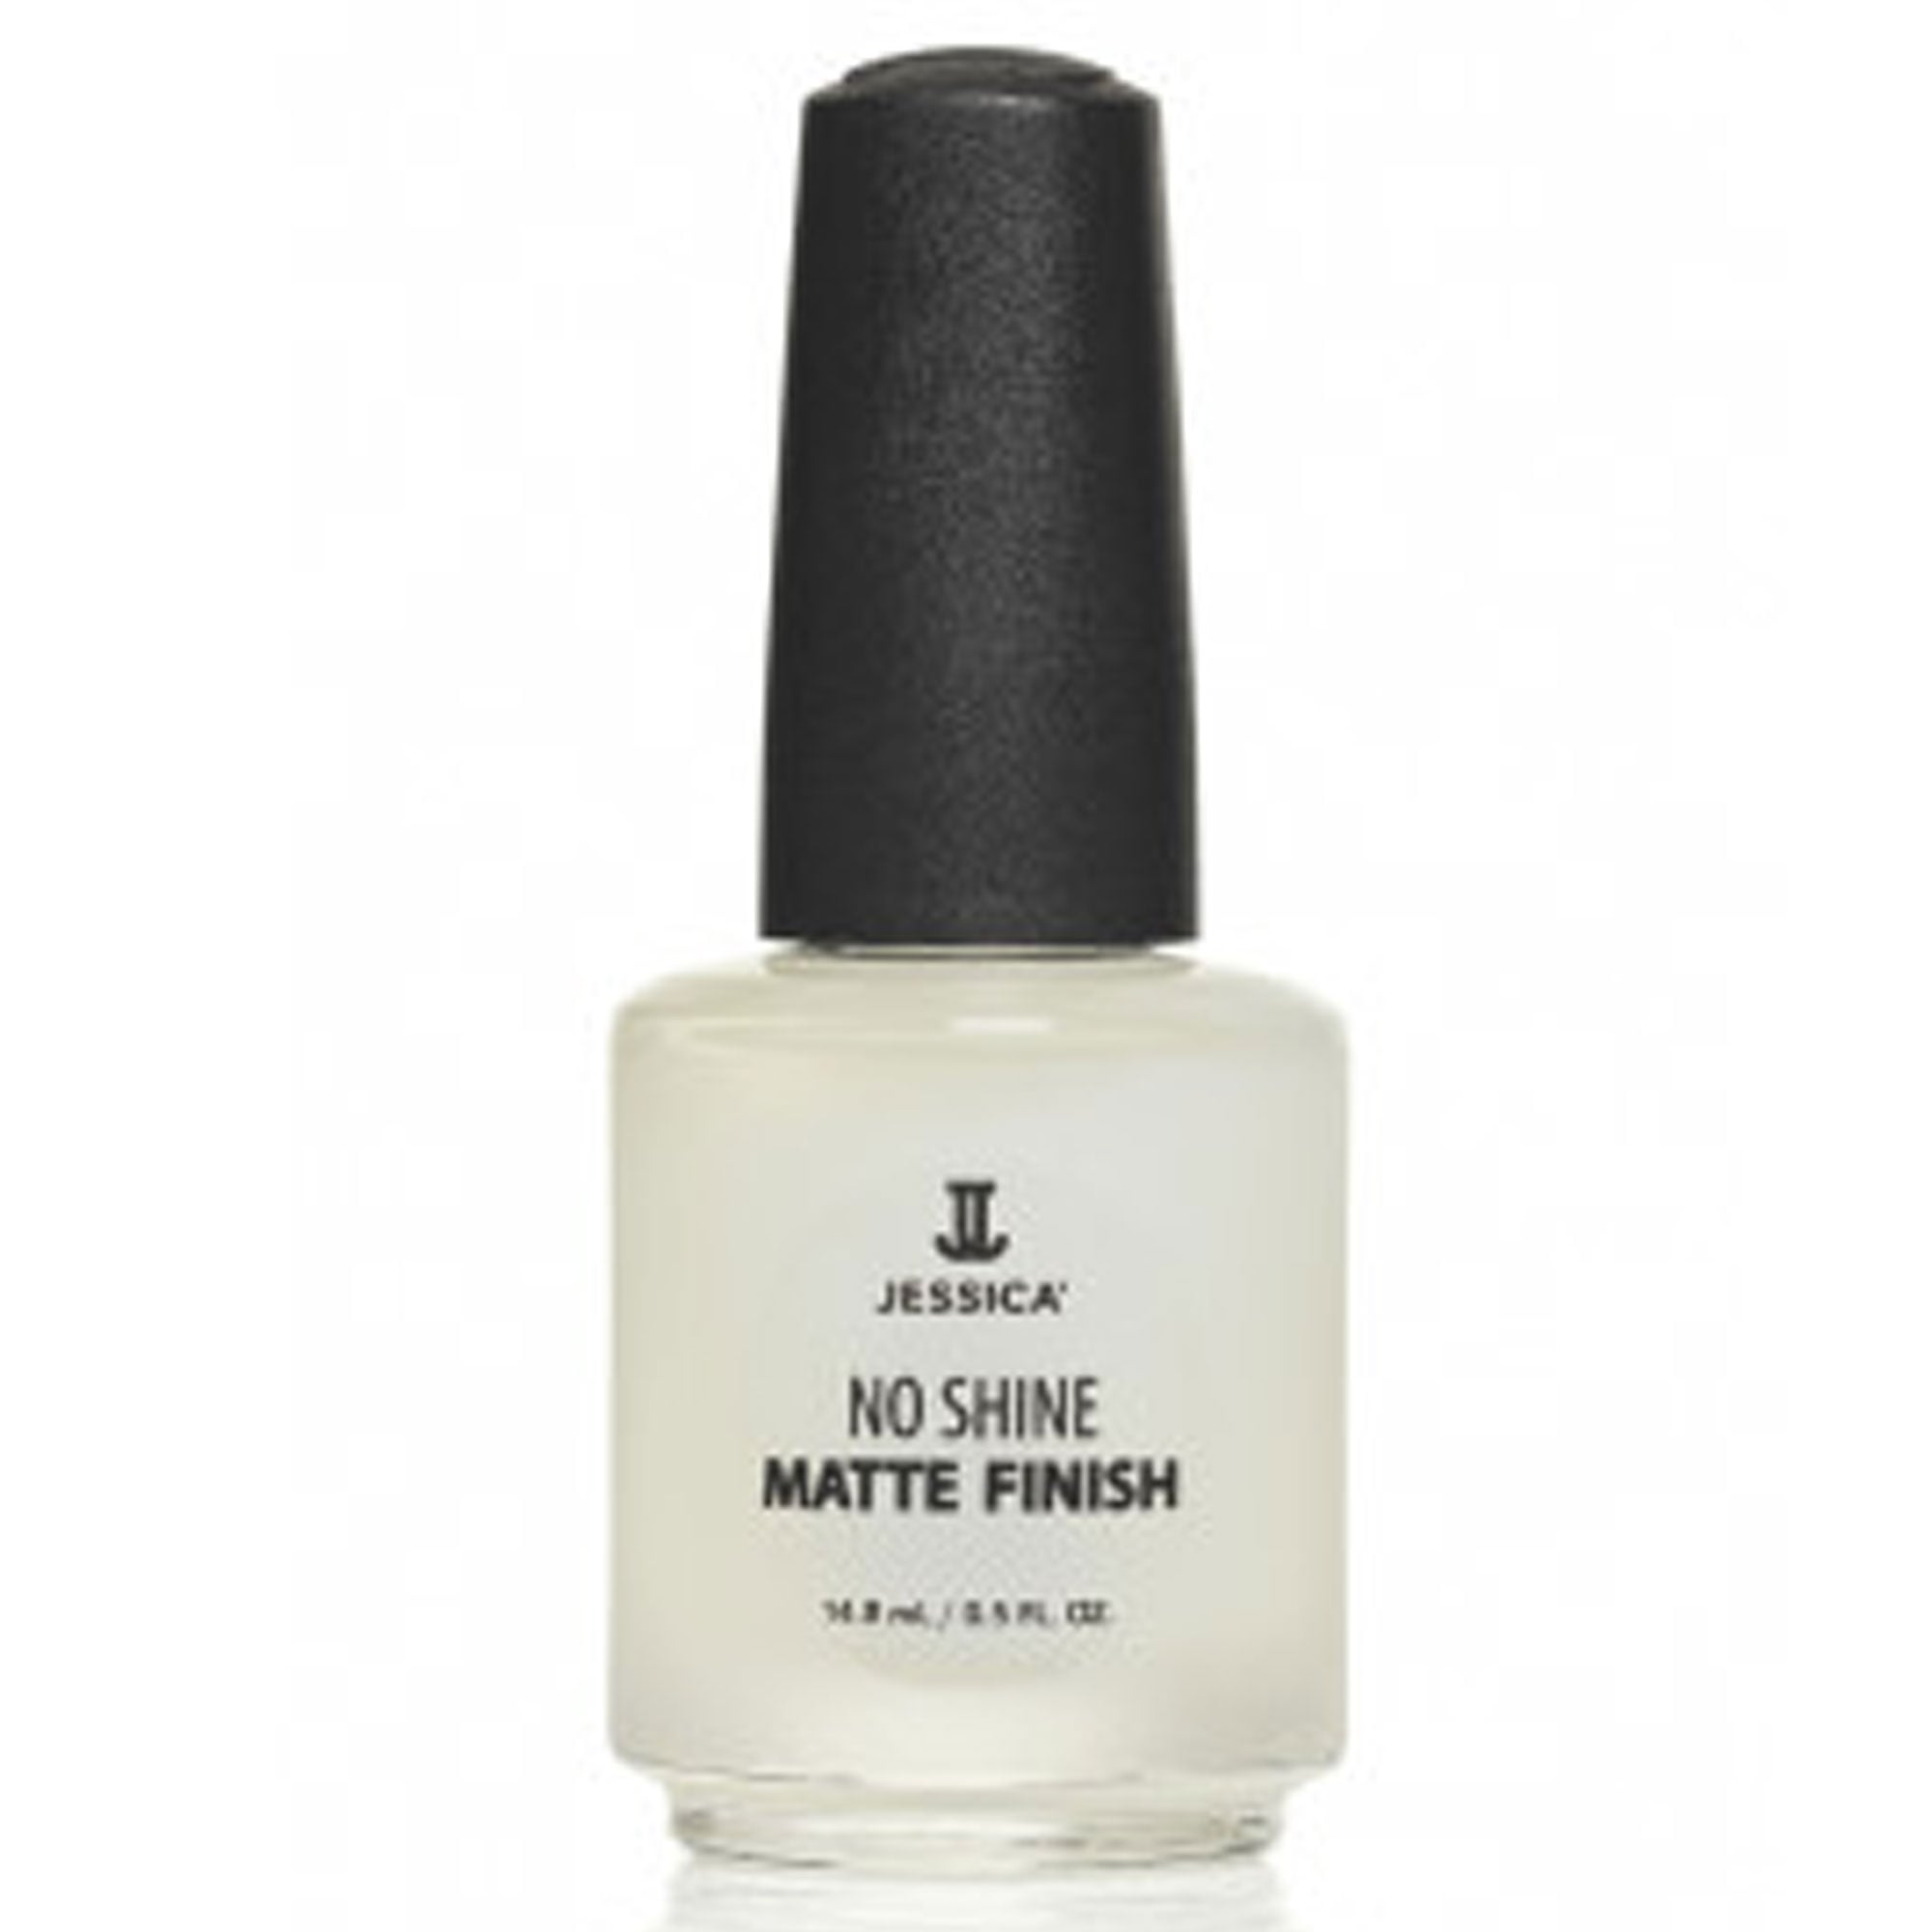 Jessica No Shine Finish Top Coat (14.8ml)